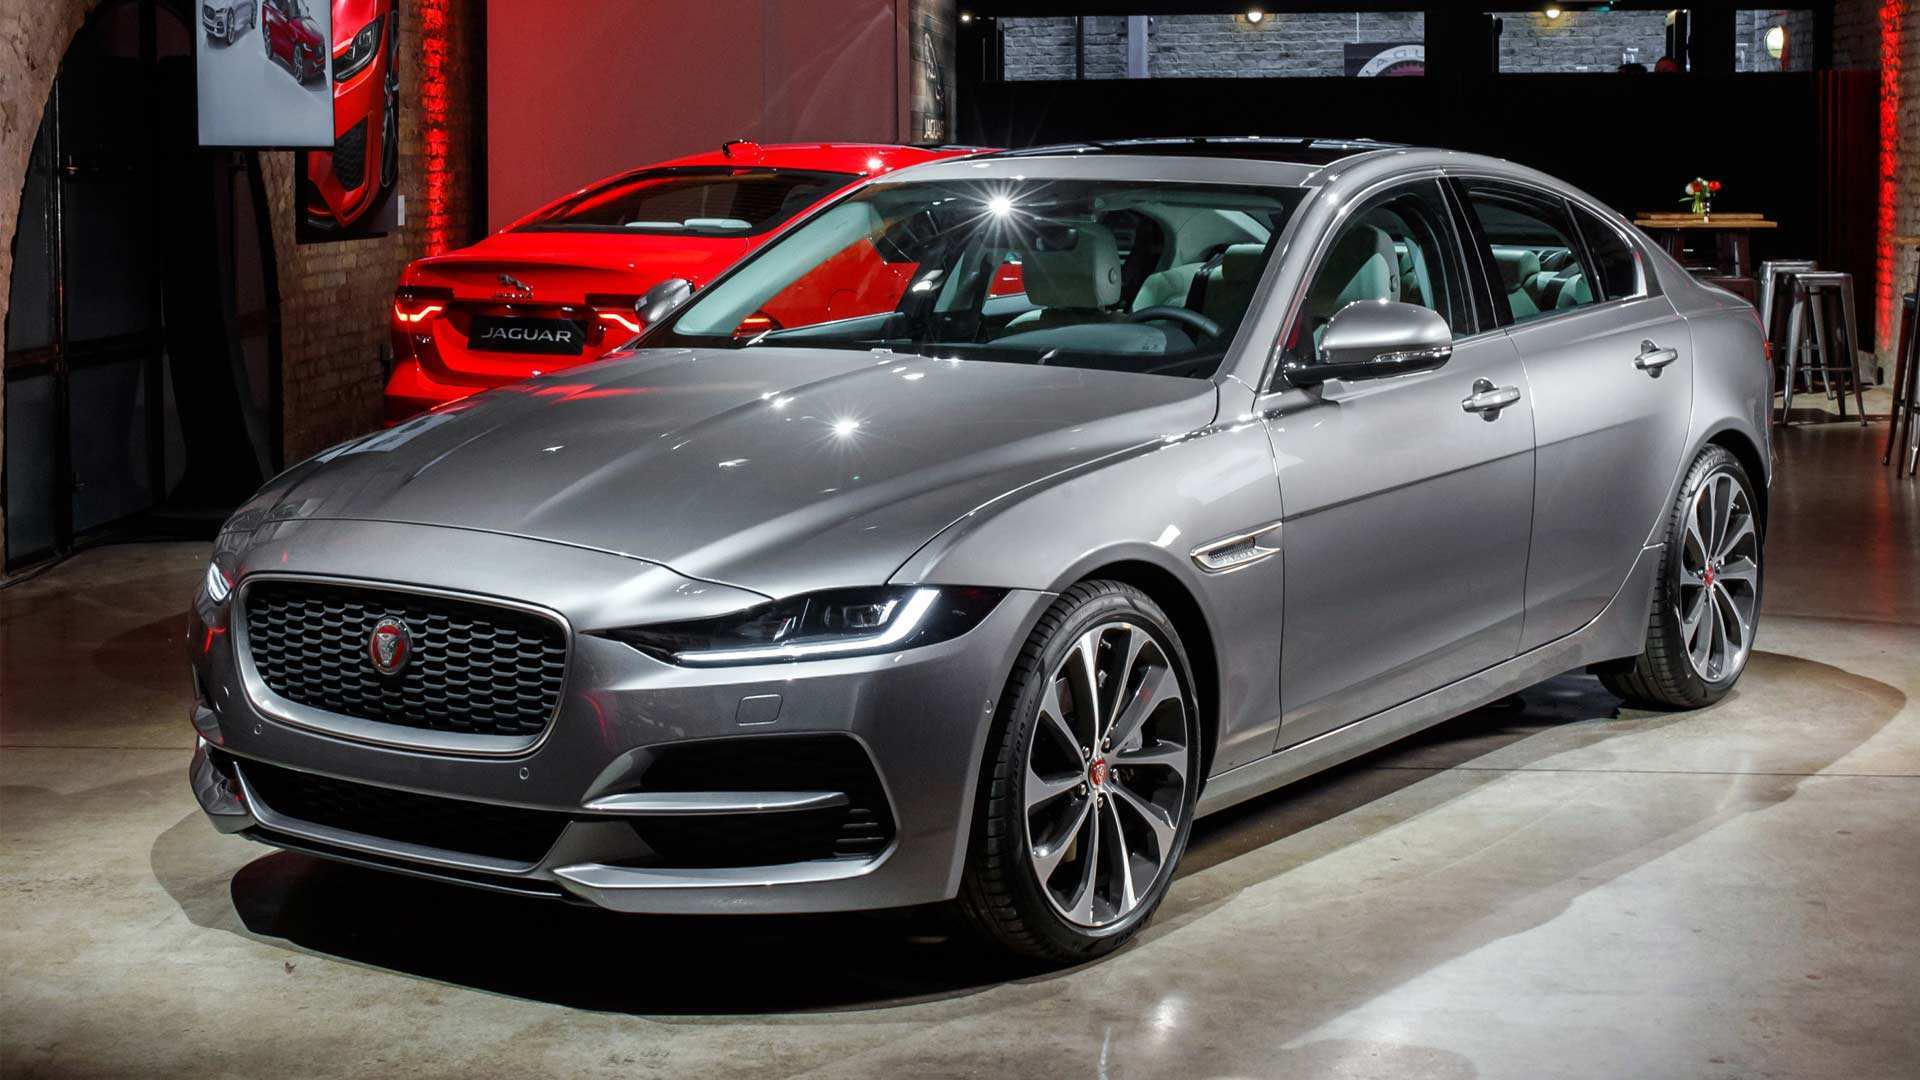 87 A 2020 Jaguar XE Performance And New Engine